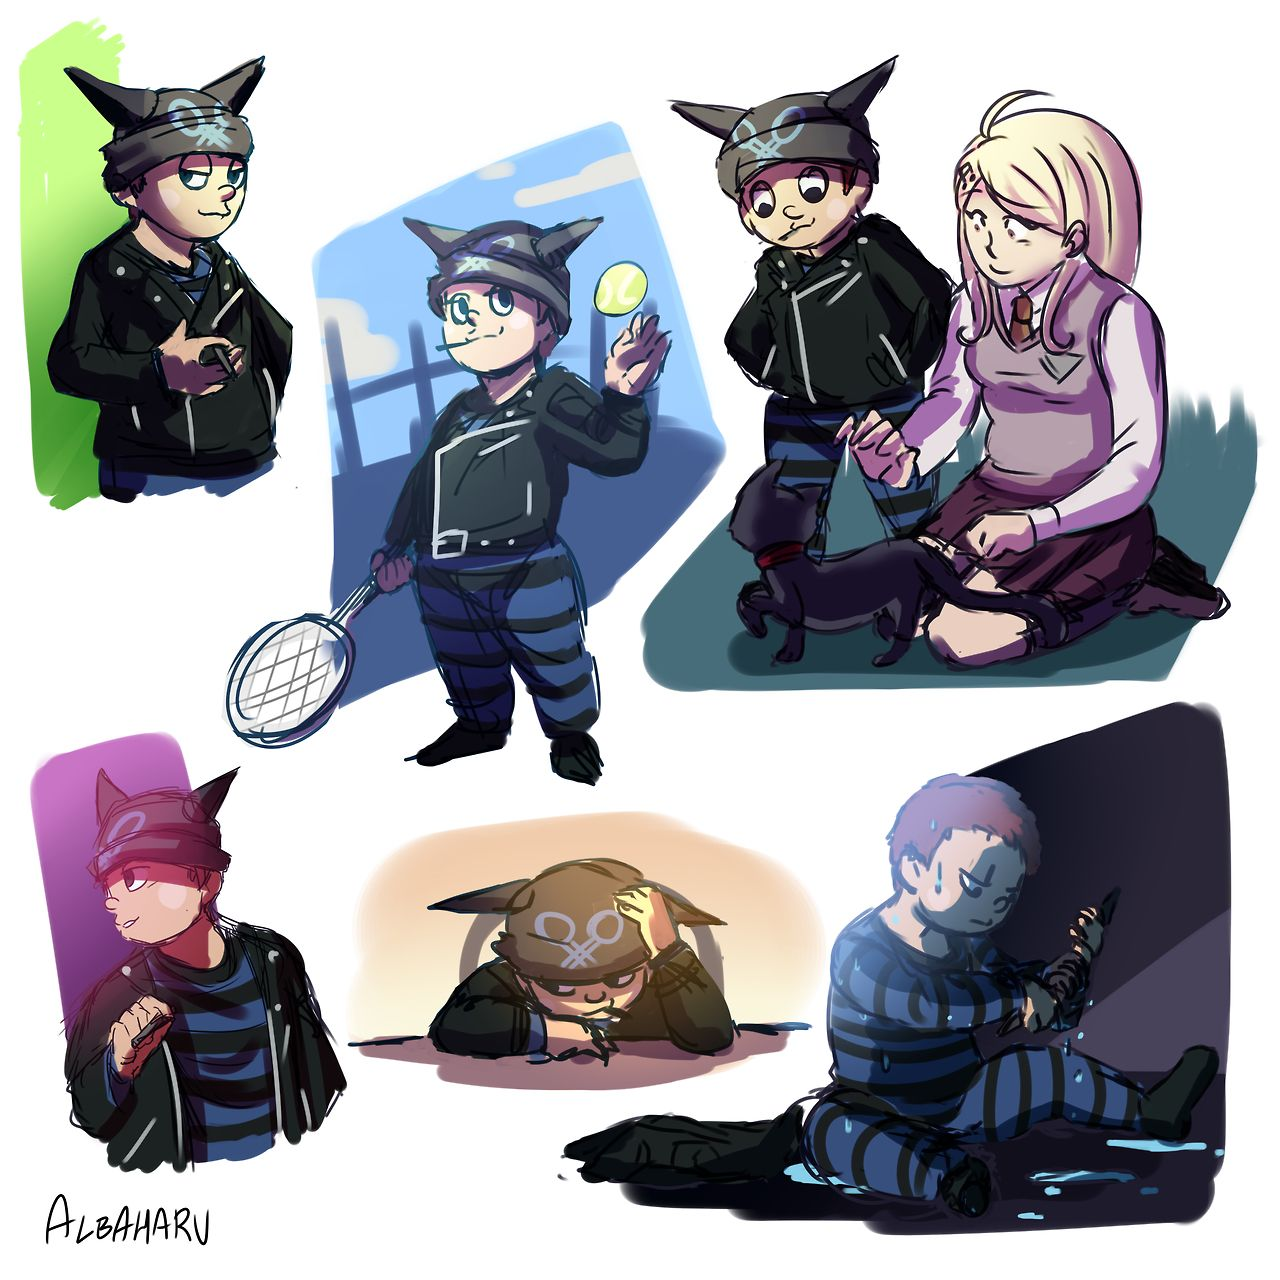 Pin By Millie Nava On Ryoma Hoshi Danganronpa Danganronpa V3 New Danganronpa V3 Read i'll prove it to you. pinterest